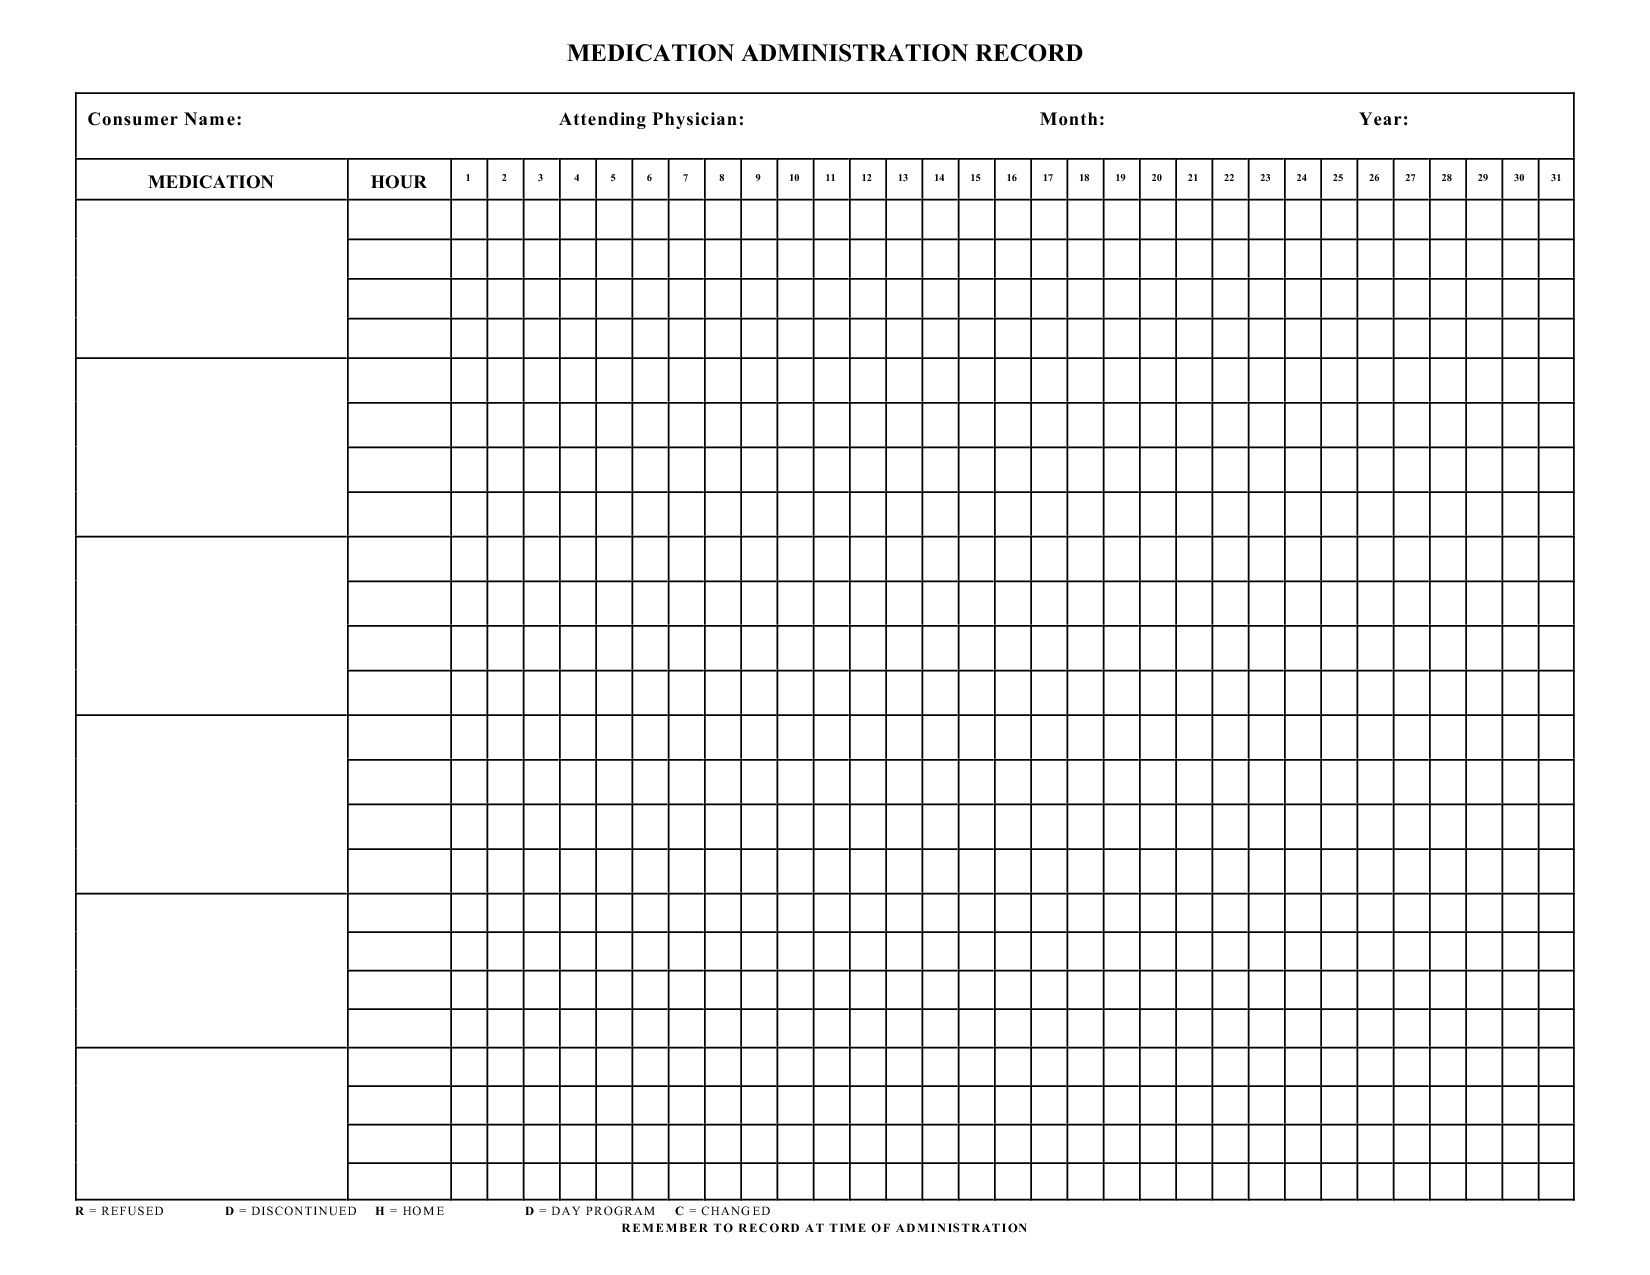 004 Dreaded Medication Administration Record Template Pdf High Resolution  Simple Free